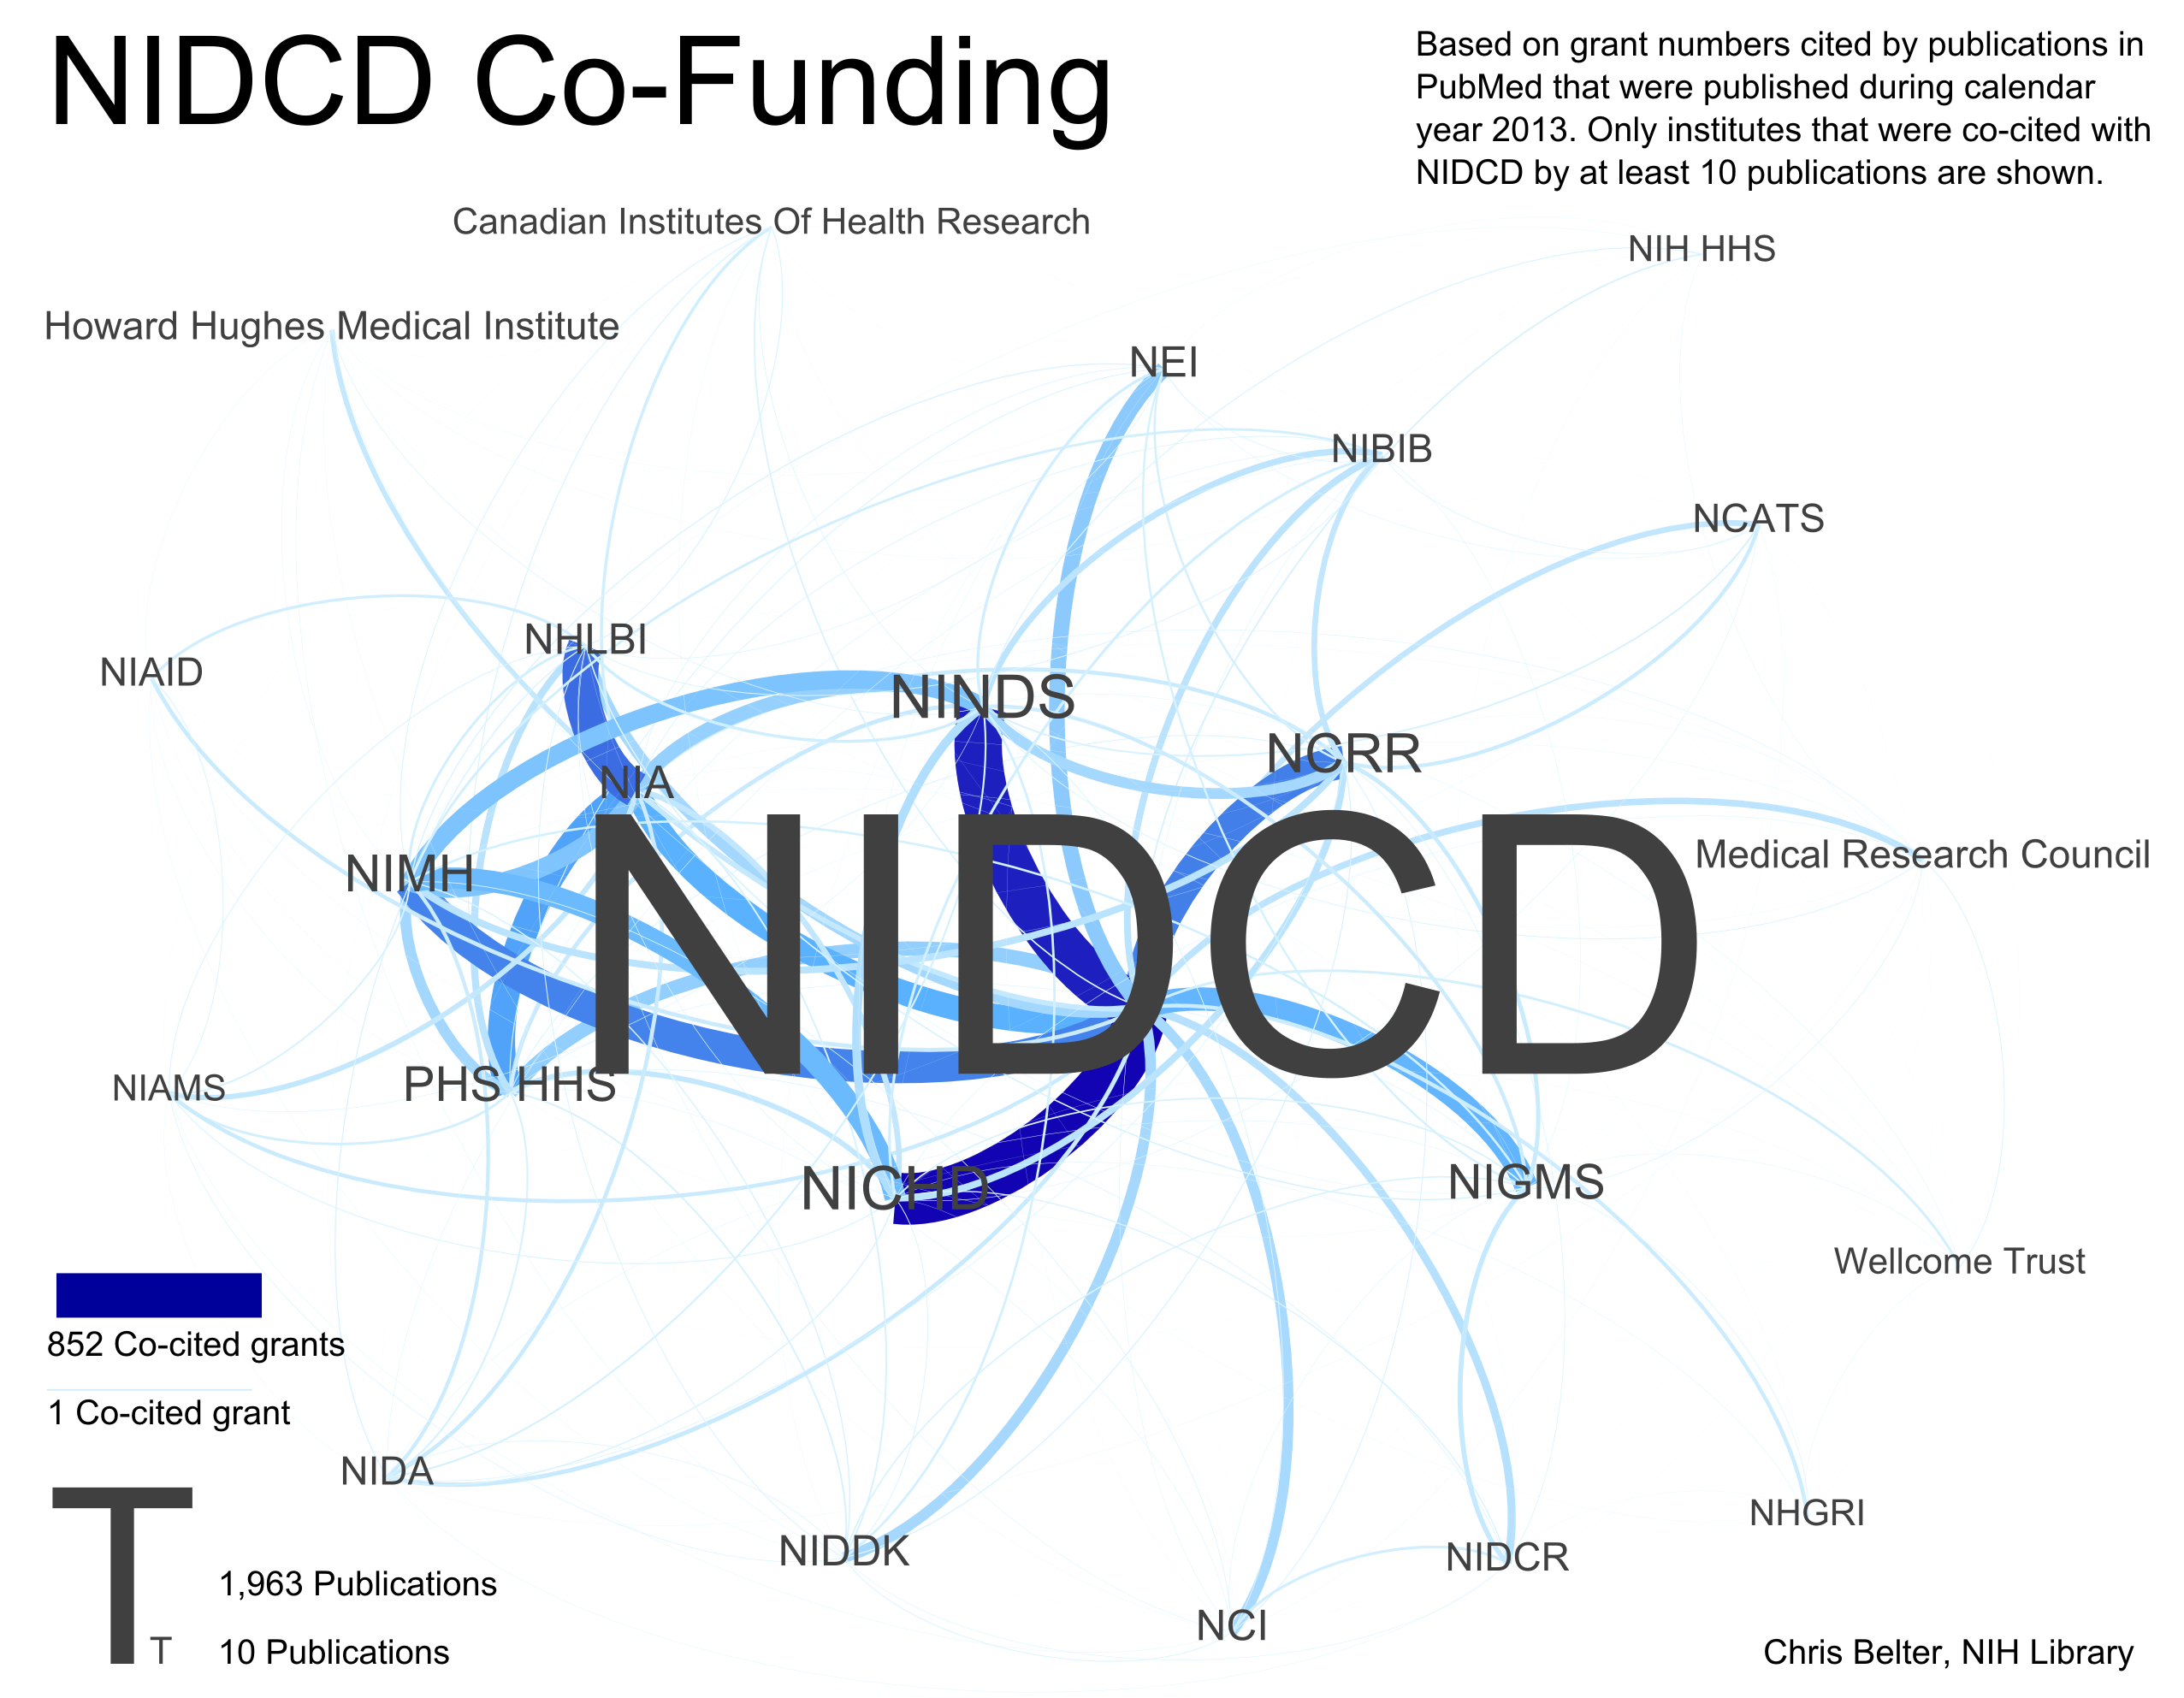 NIDCD Co-Funding